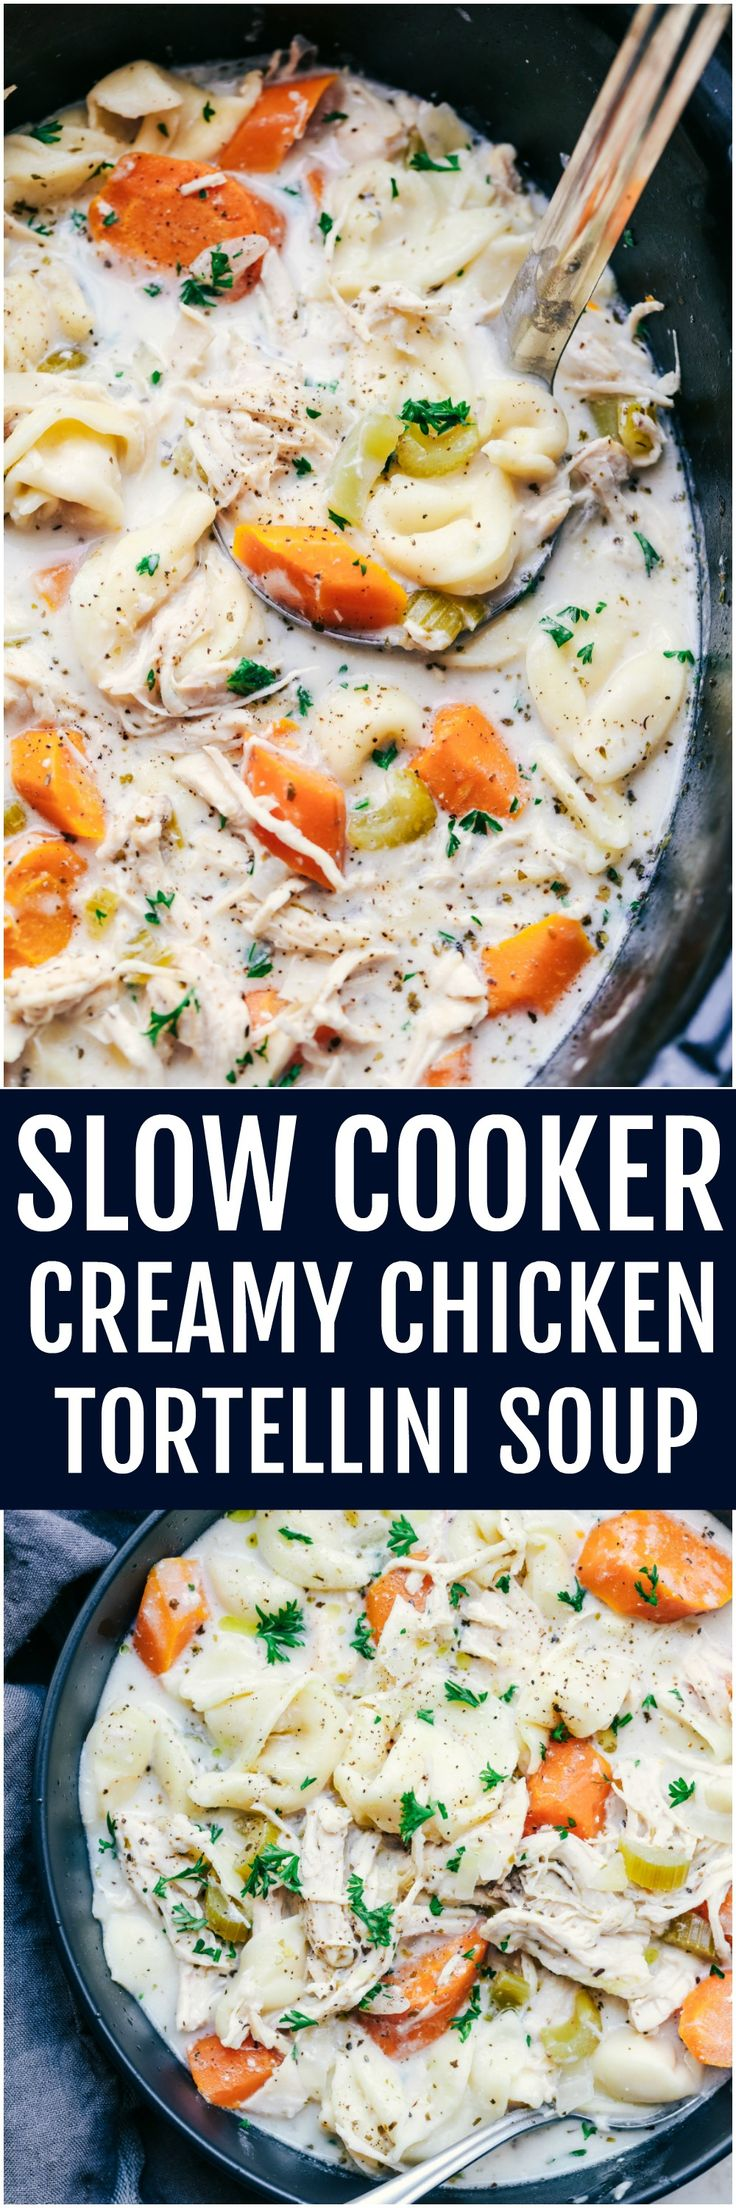 Slow Cooker Creamy Chicken Tortellini Soup is such a delicious and comforting soup.  Loaded with carrots, celery, onion, chicken and tortellini, this creamy soup will become a favorite!